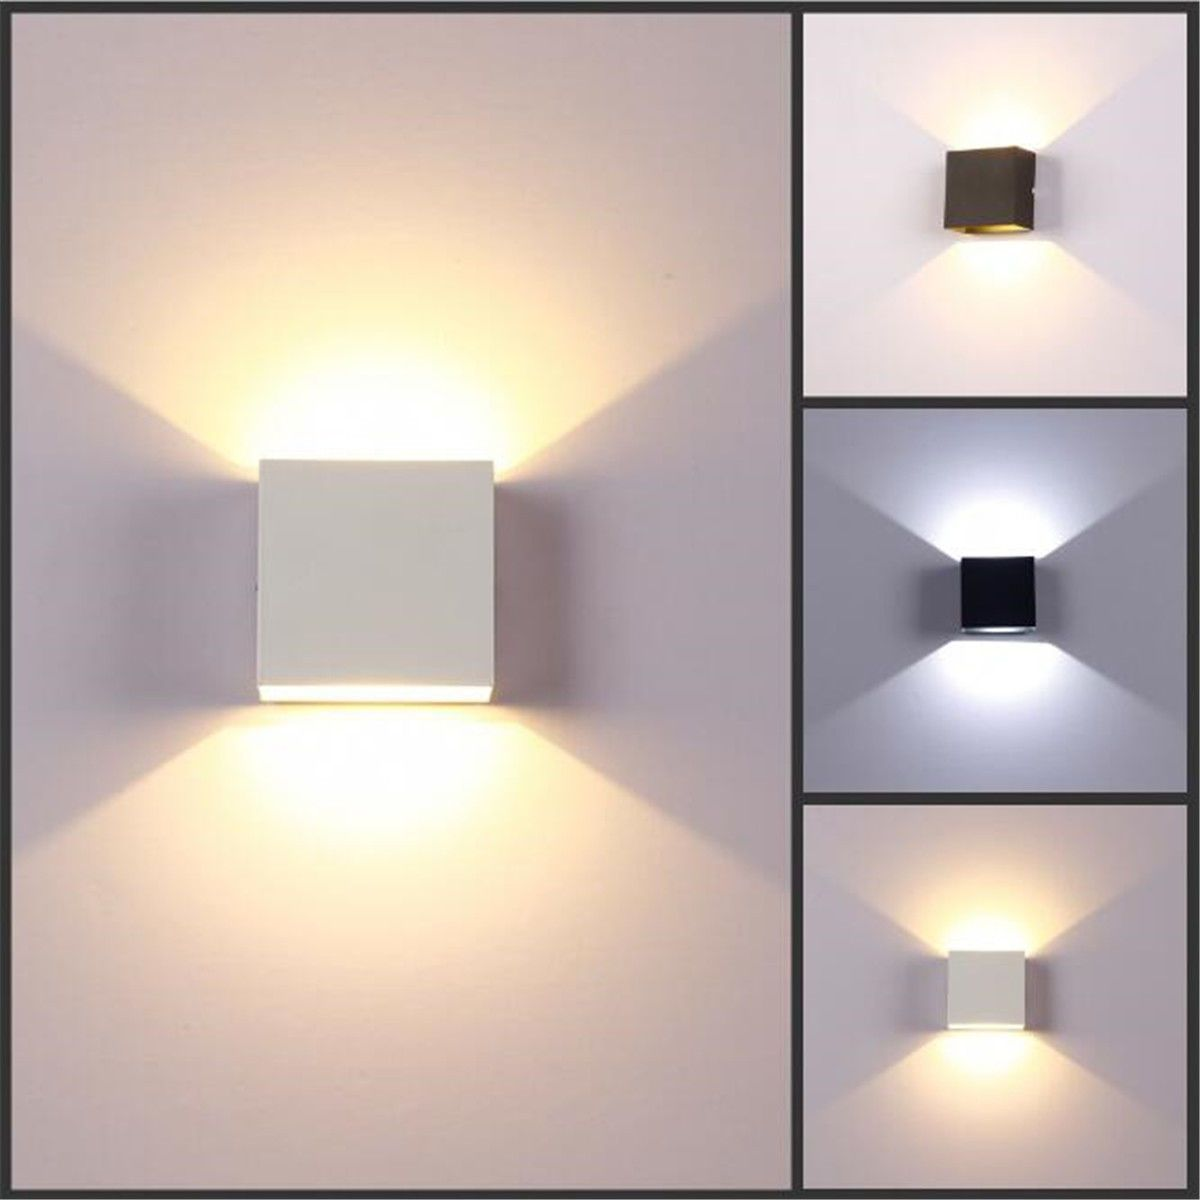 Modern 6w Led Wall Light Up Down Lamp Sconce Spot Uplighter Home Bedroom Fixture Ebay Home Gard Living Room Light Fixtures Led Wall Lamp Indoor Wall Lights